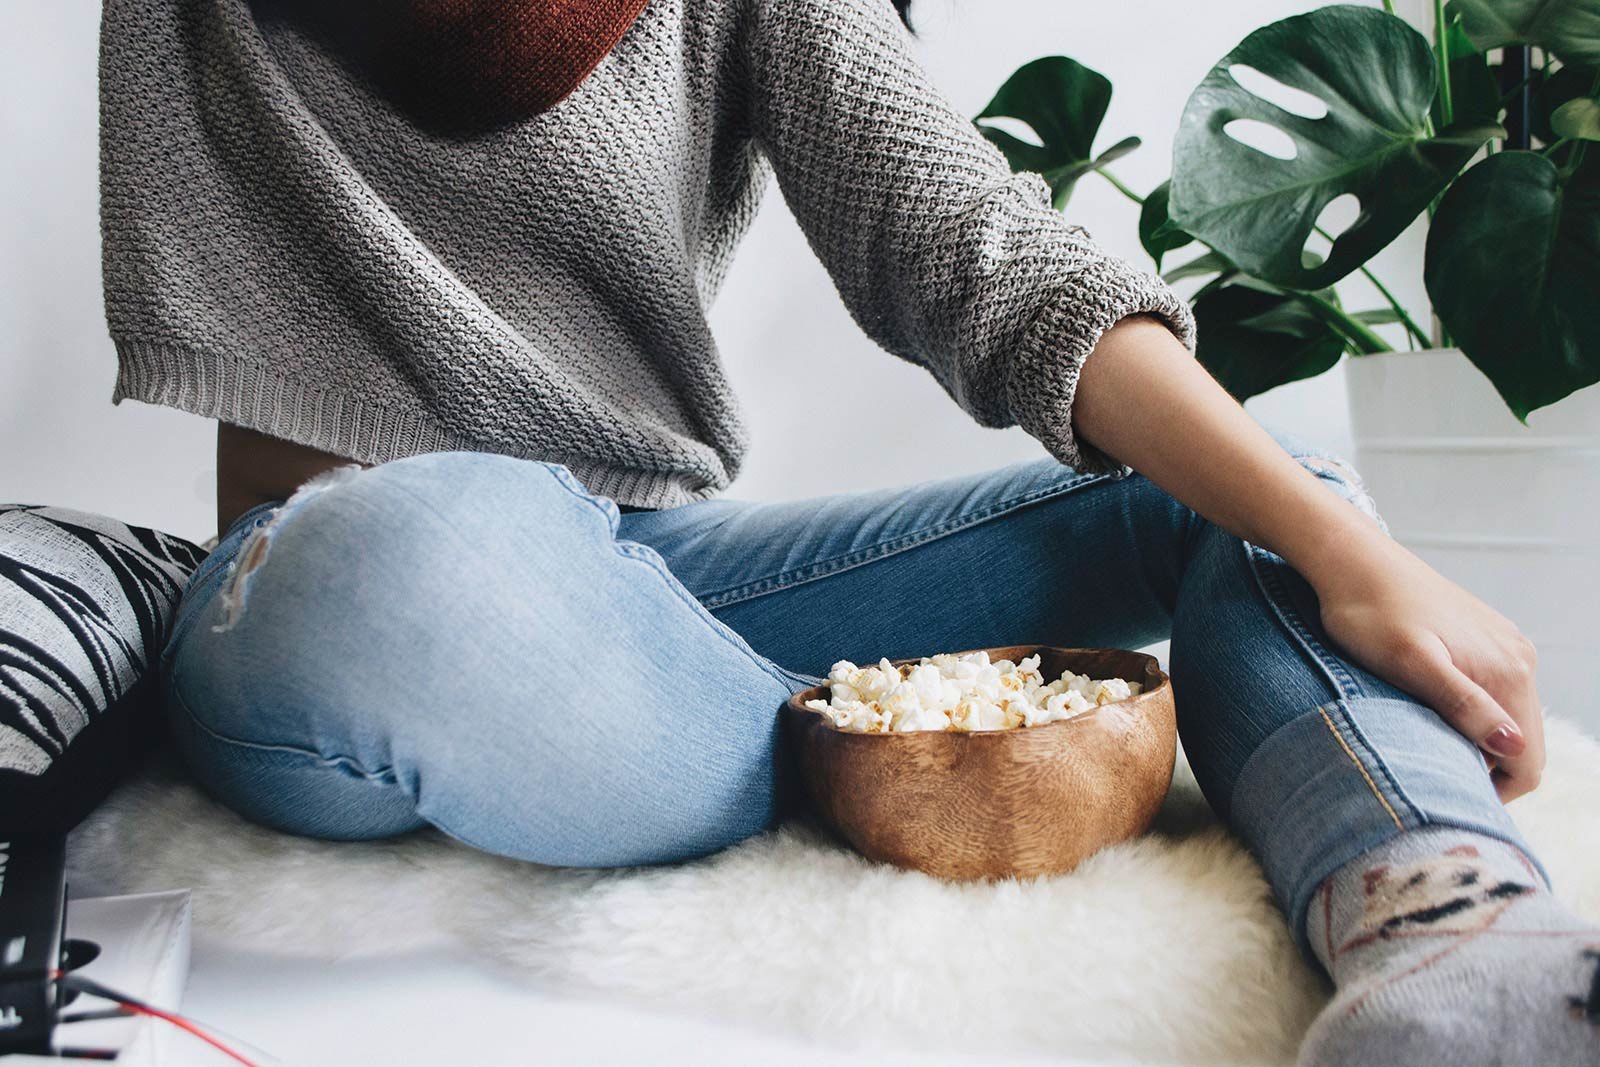 Woman in sweater and jeans sitting on carpet next to plant with bowl of popcorn.